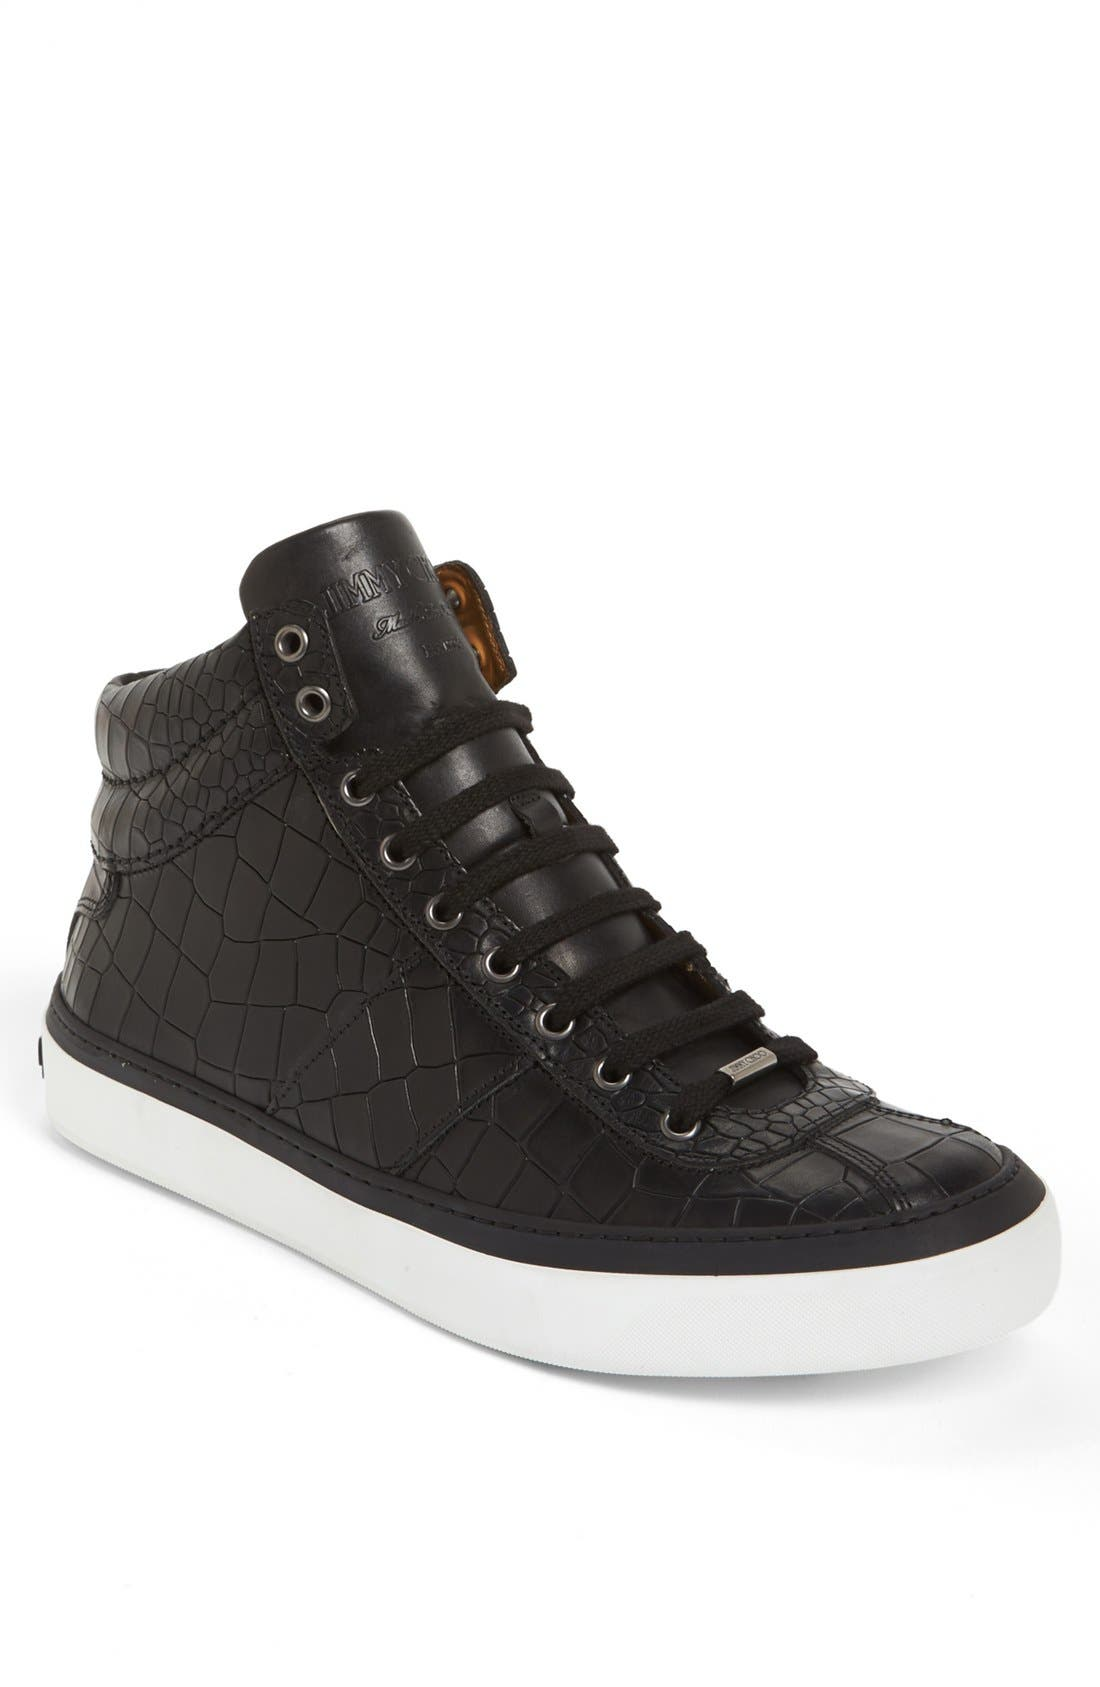 JIMMY CHOO 'Belgravia' High Top Sneaker